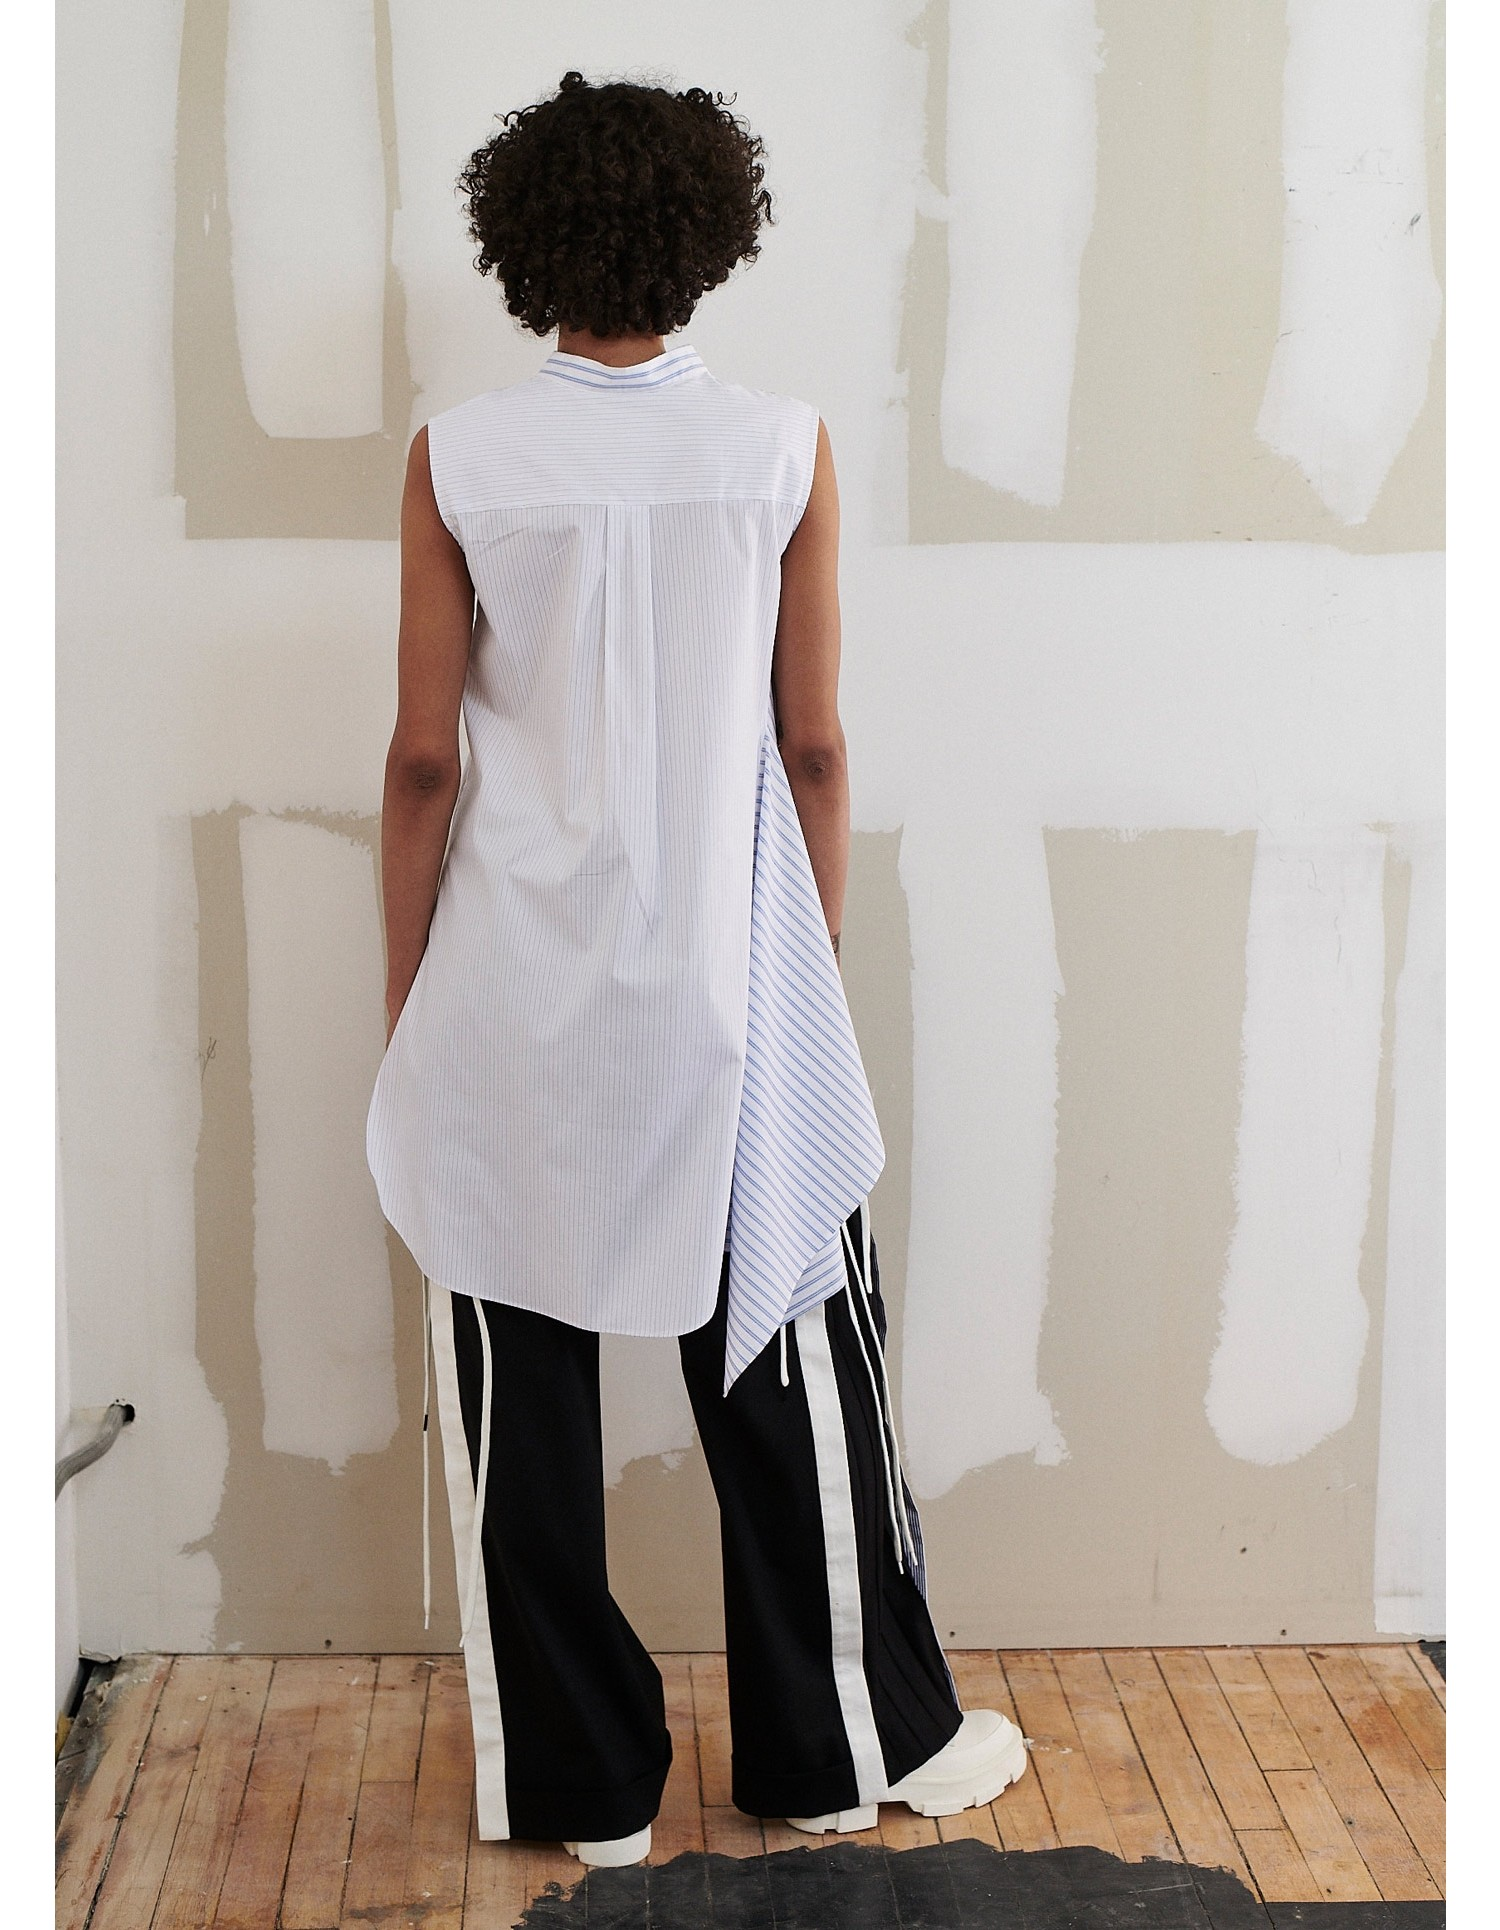 MONSE Lace Up Wide Leg Trouser on Model Back View